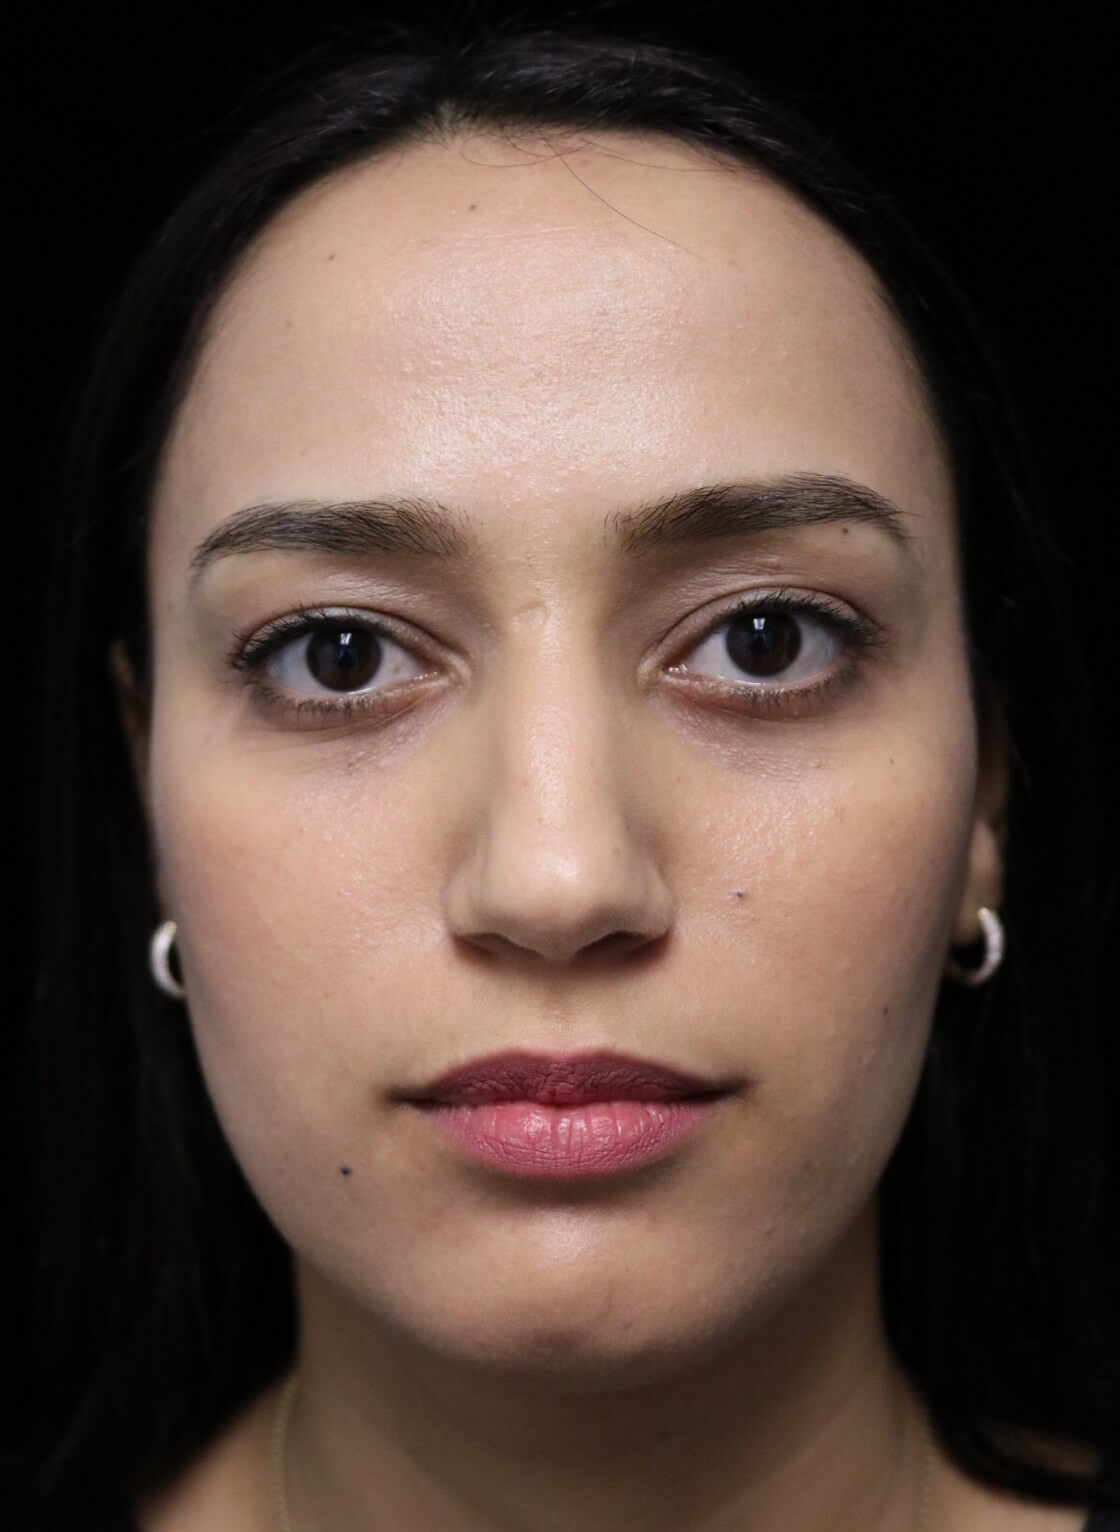 before and after photo on a frontal view of a non-smiling female middle eastern patient  who underwent non-surgical rhinoplasty